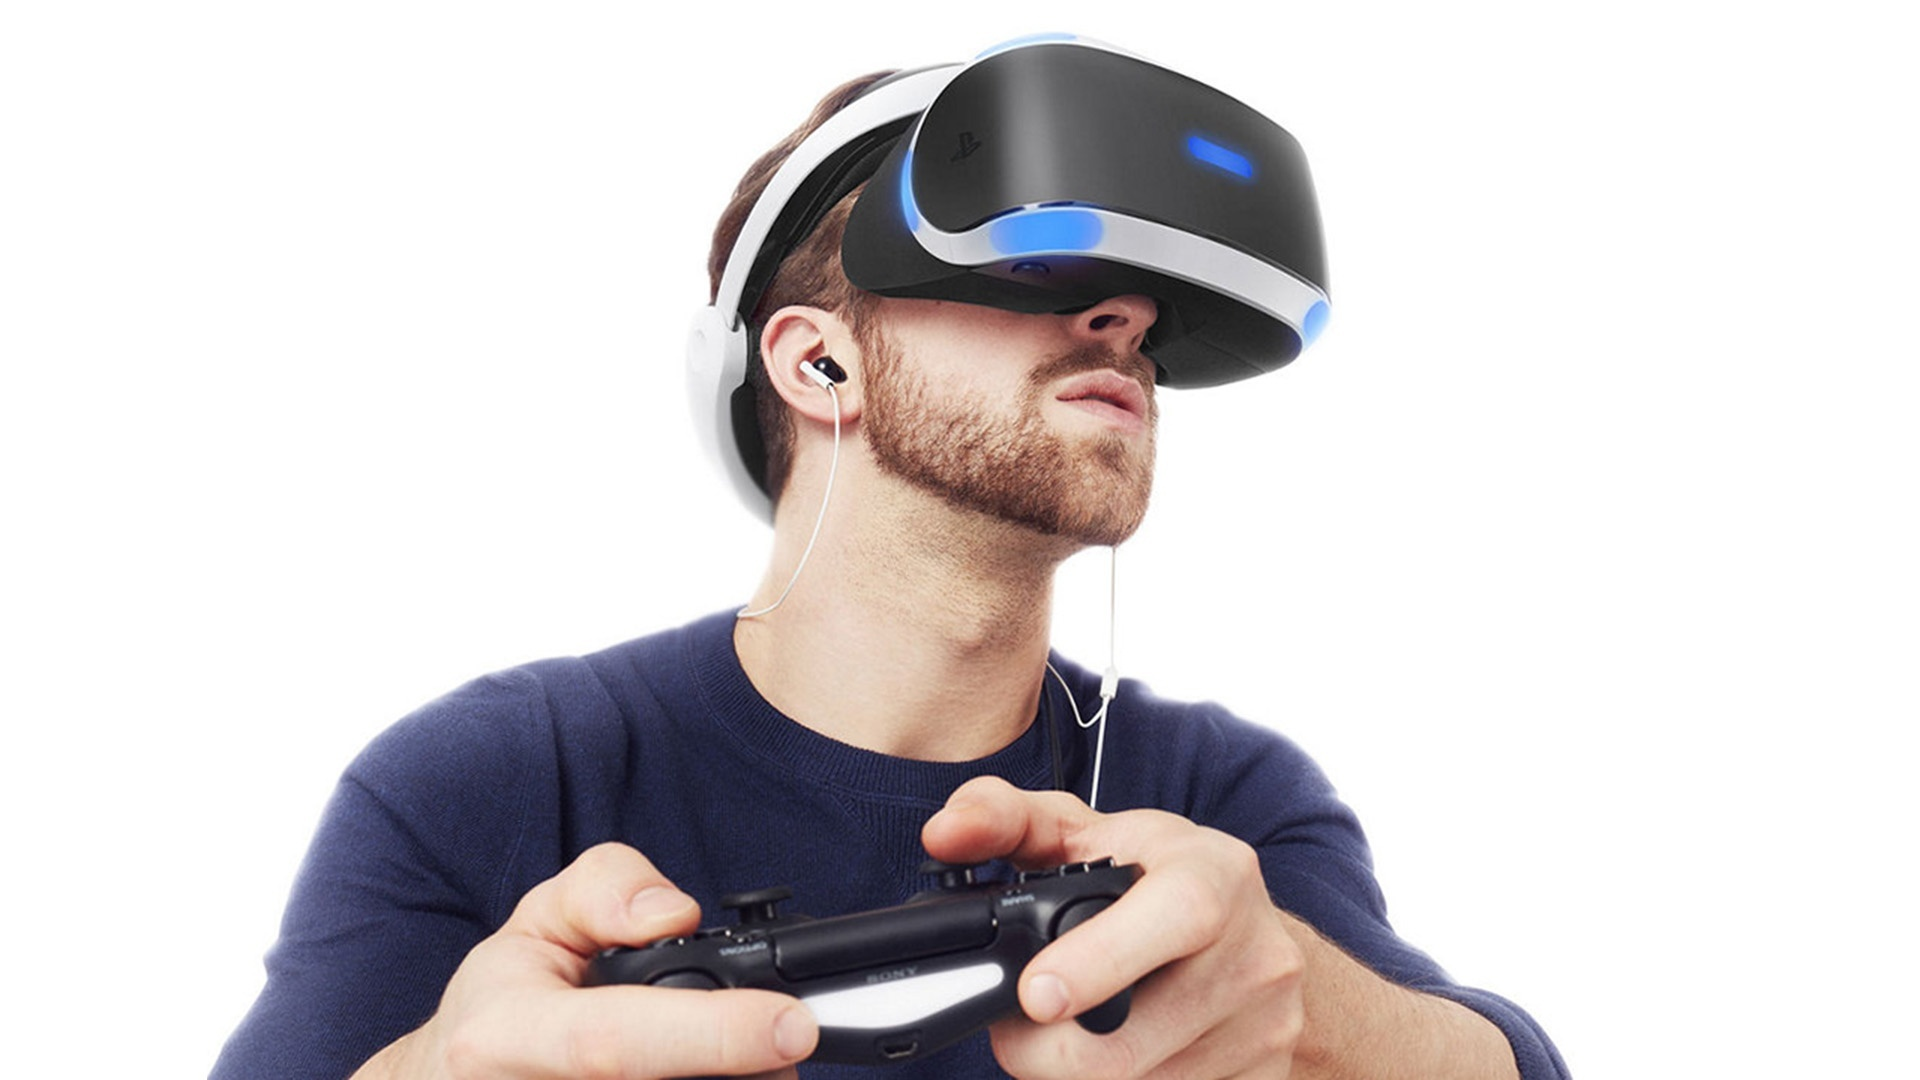 PlayStation 5 release date VR specs